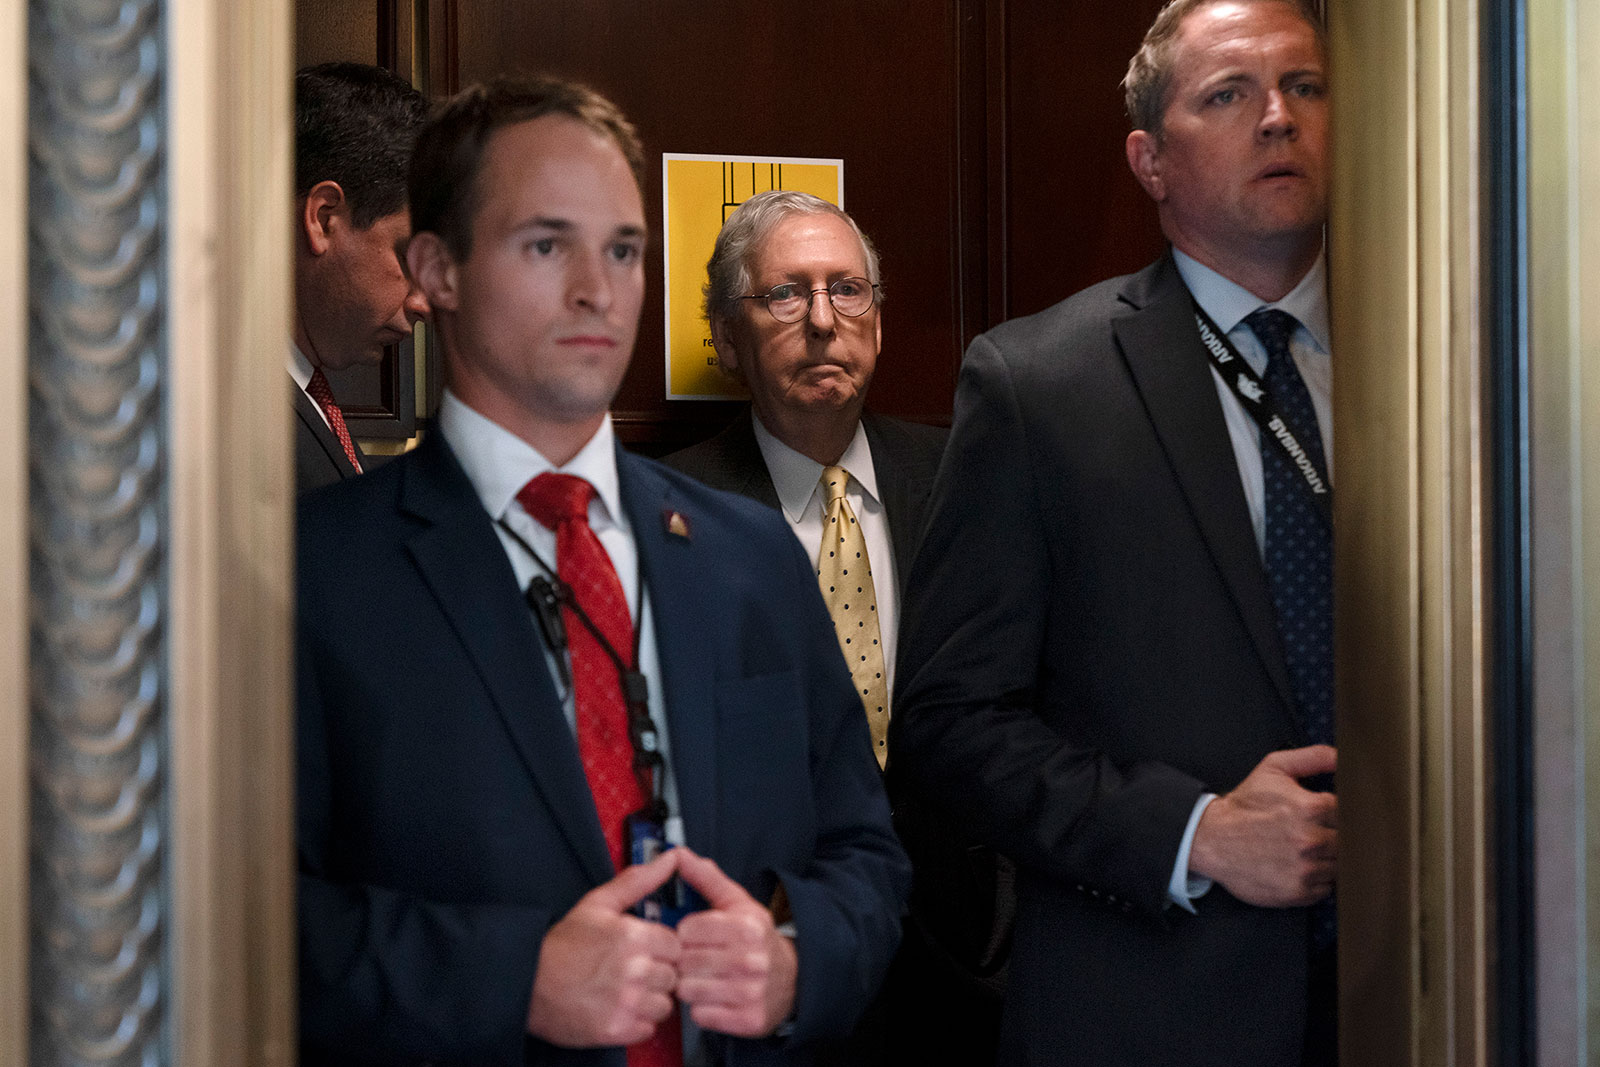 Senate Minority Leader Mitch McConnell, center, rides in an elevator after a meeting on Capitol Hill on Tuesday, May 18.